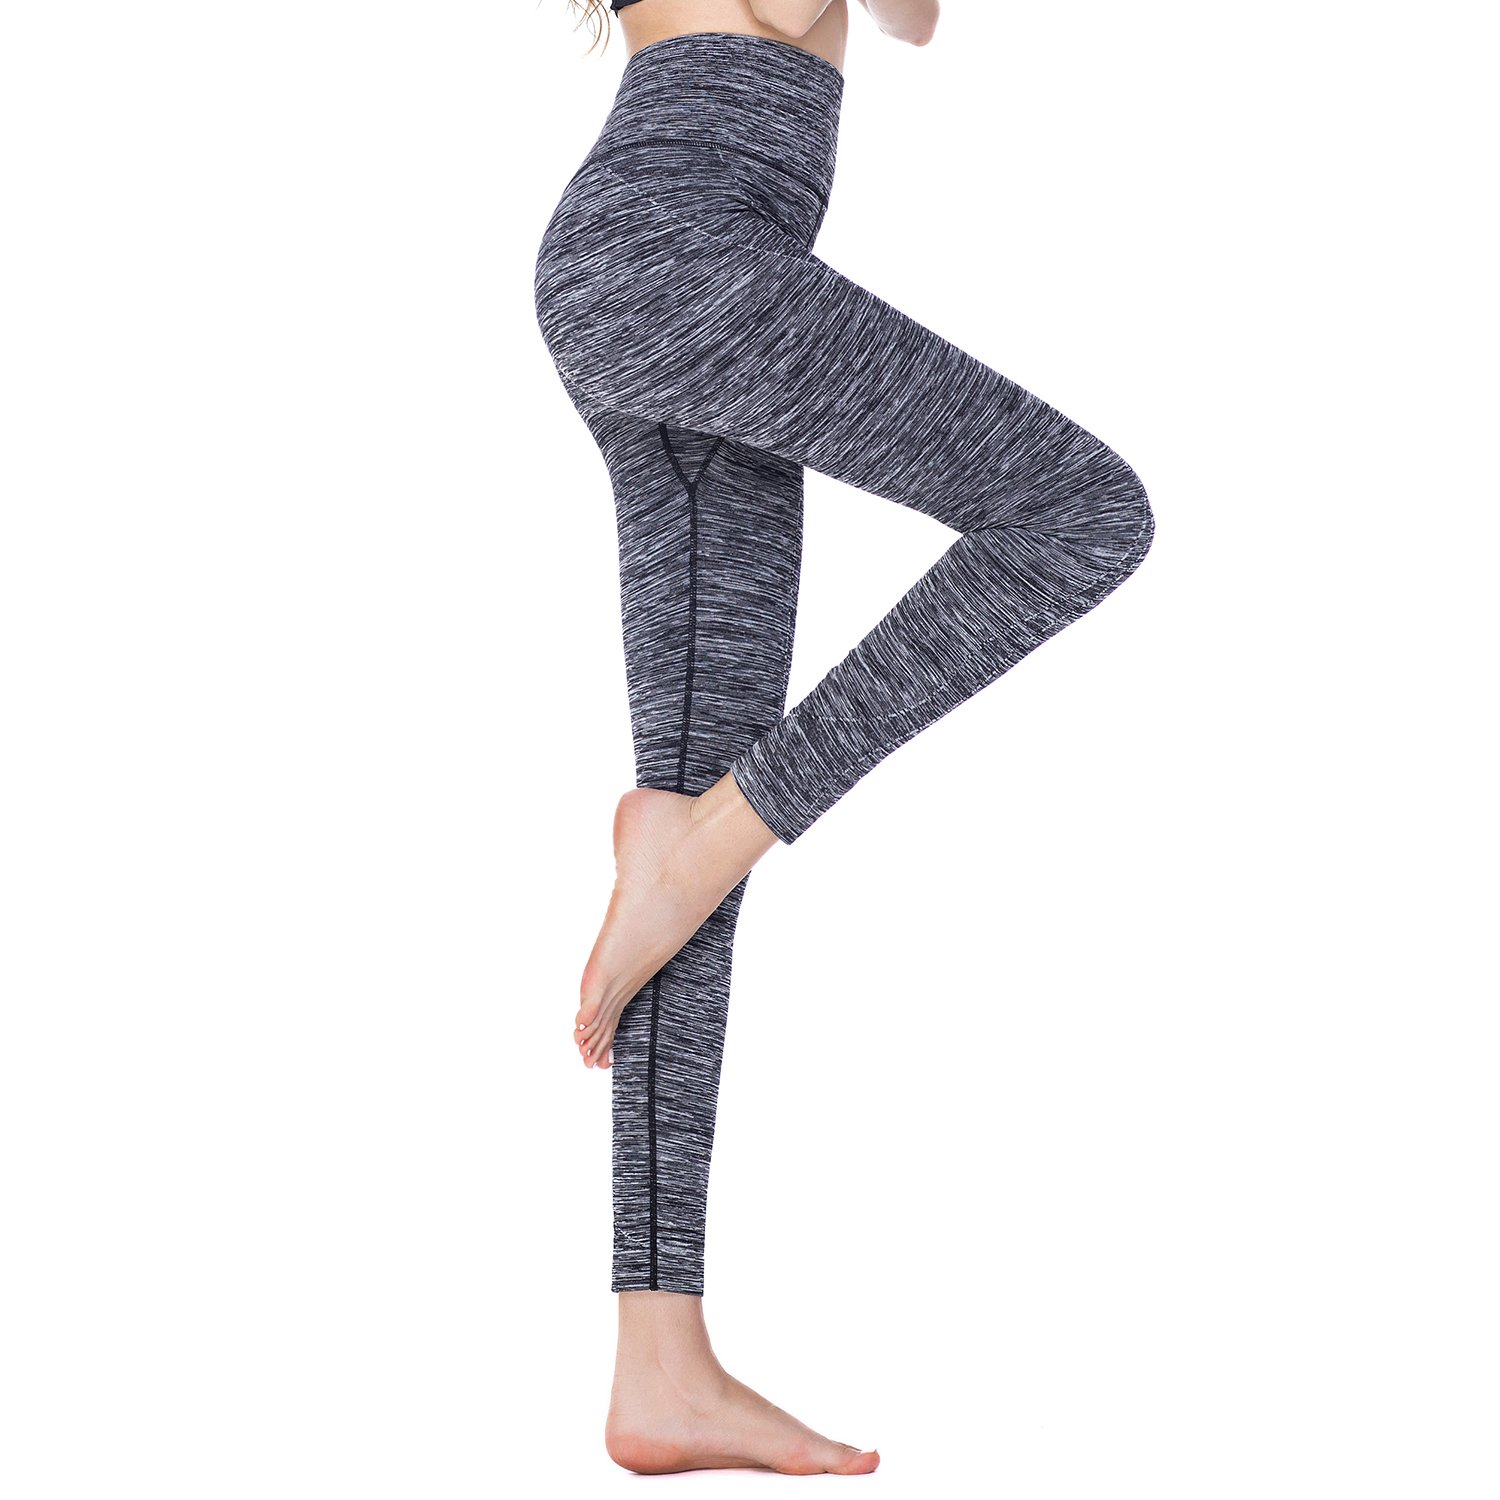 Tirrinia Women Power Stretch Yoga Leggings Pants Plus Size High Waist Workout Activewear Tights for Yoga, Running, Fitness, Sports